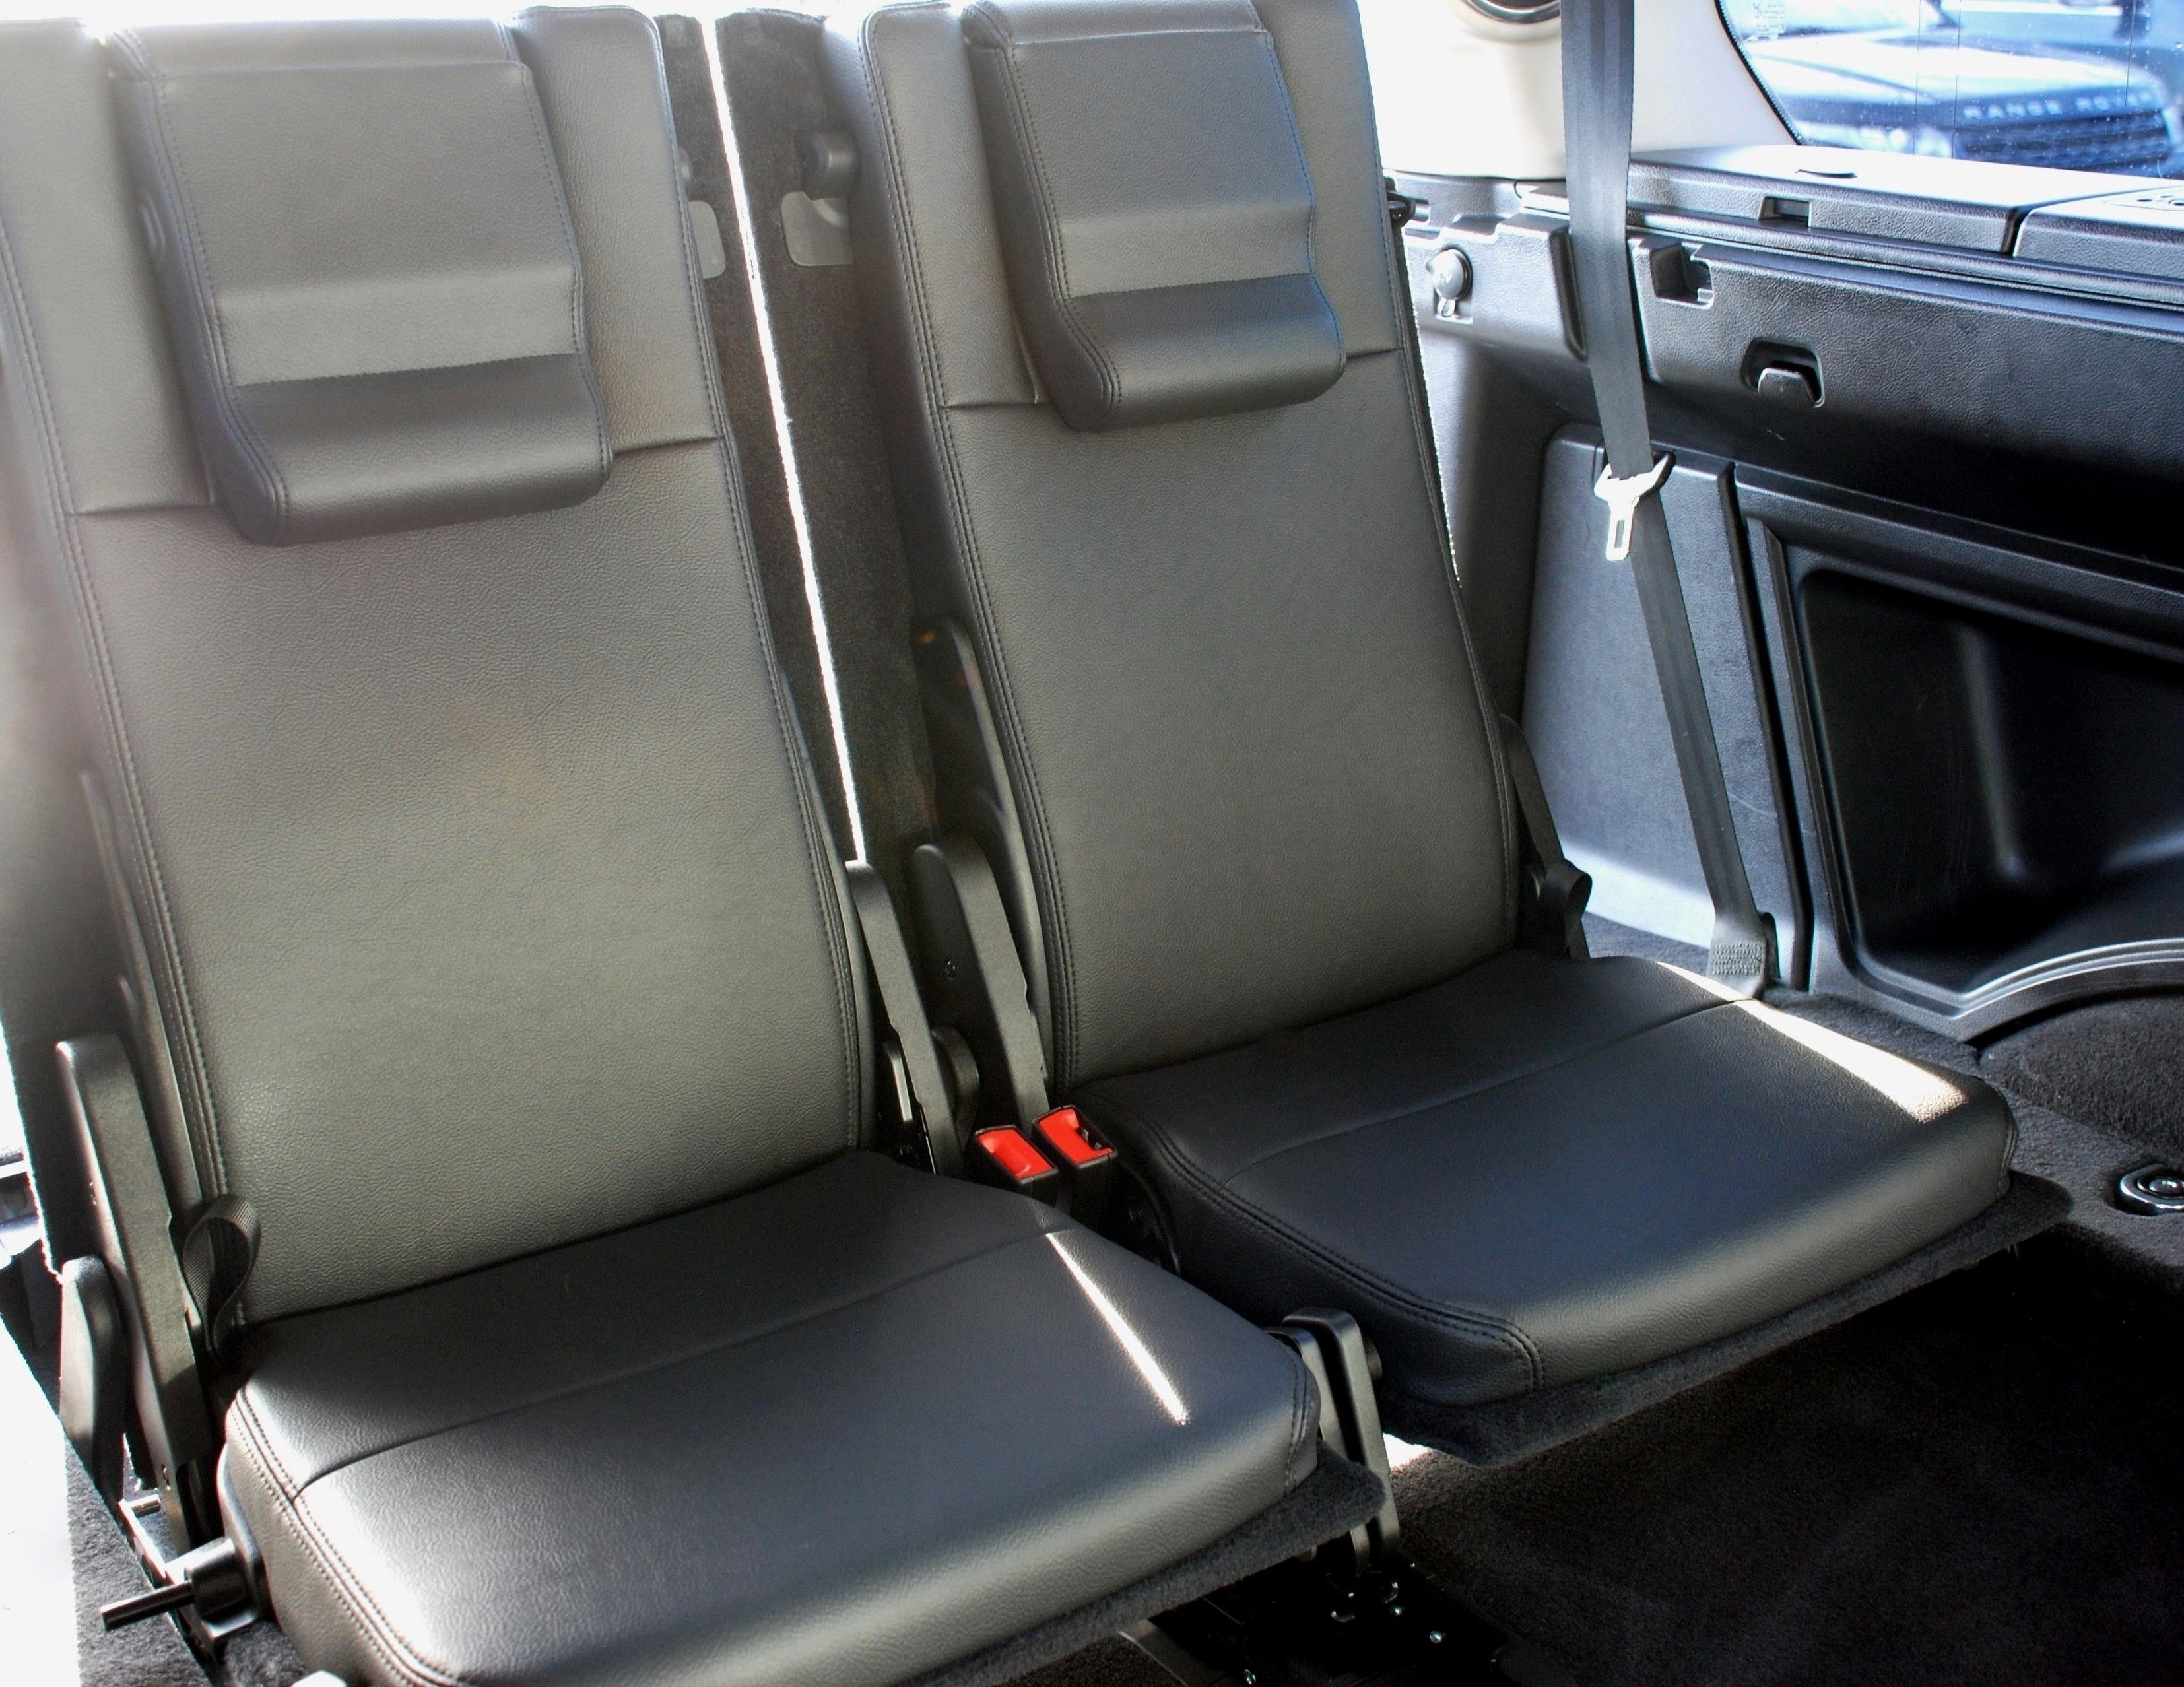 Conversion for used Land Rover Discovery 4 Commercial 3rd Row Leather Seats (makes 7 Seater) - £995+VAT